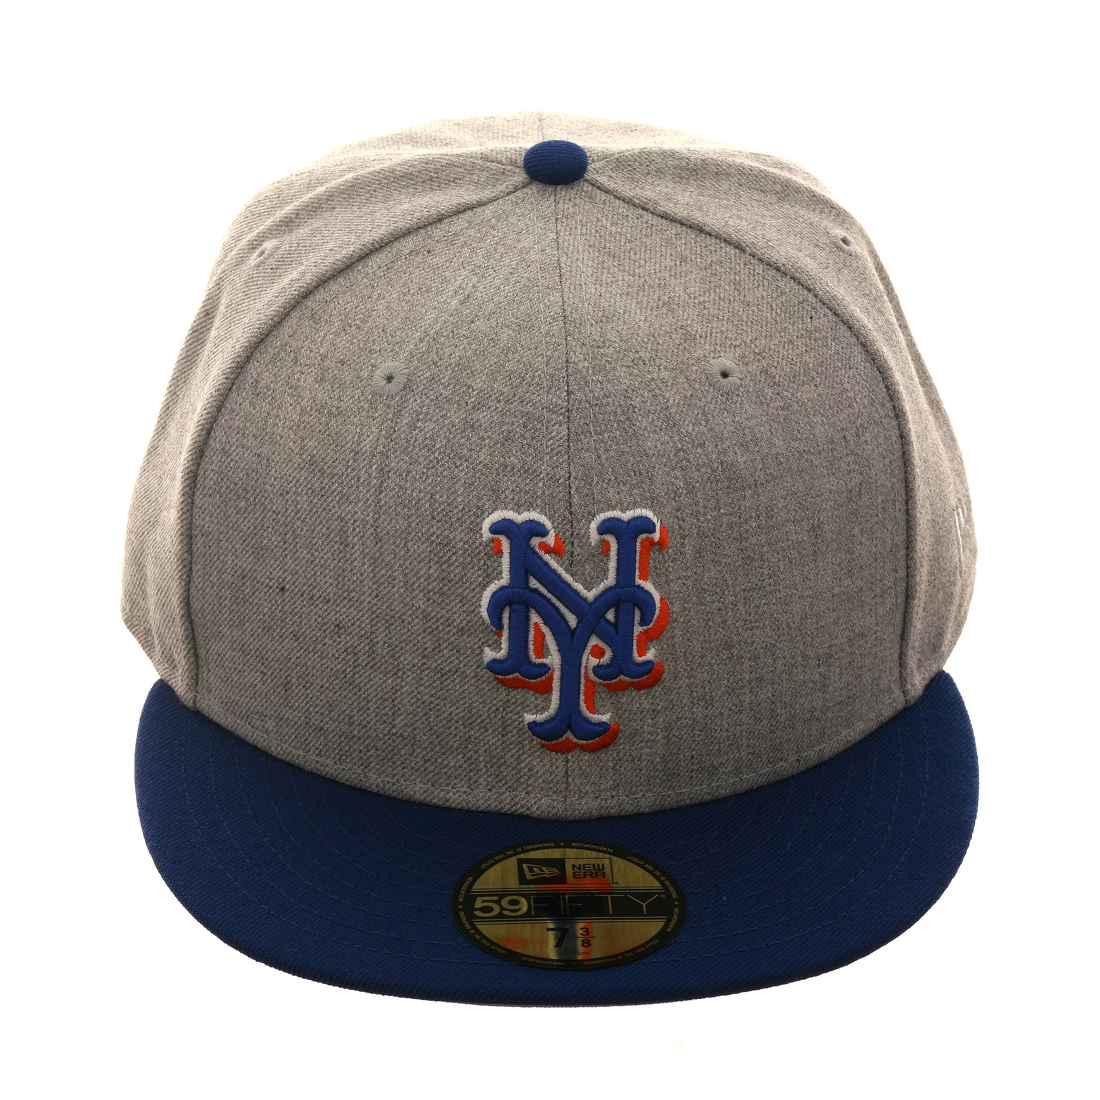 huge discount bbe21 94fa4 ... order exclusive new era 59fifty new york mets hat 2t heather gray royal  695ca 5c4d2